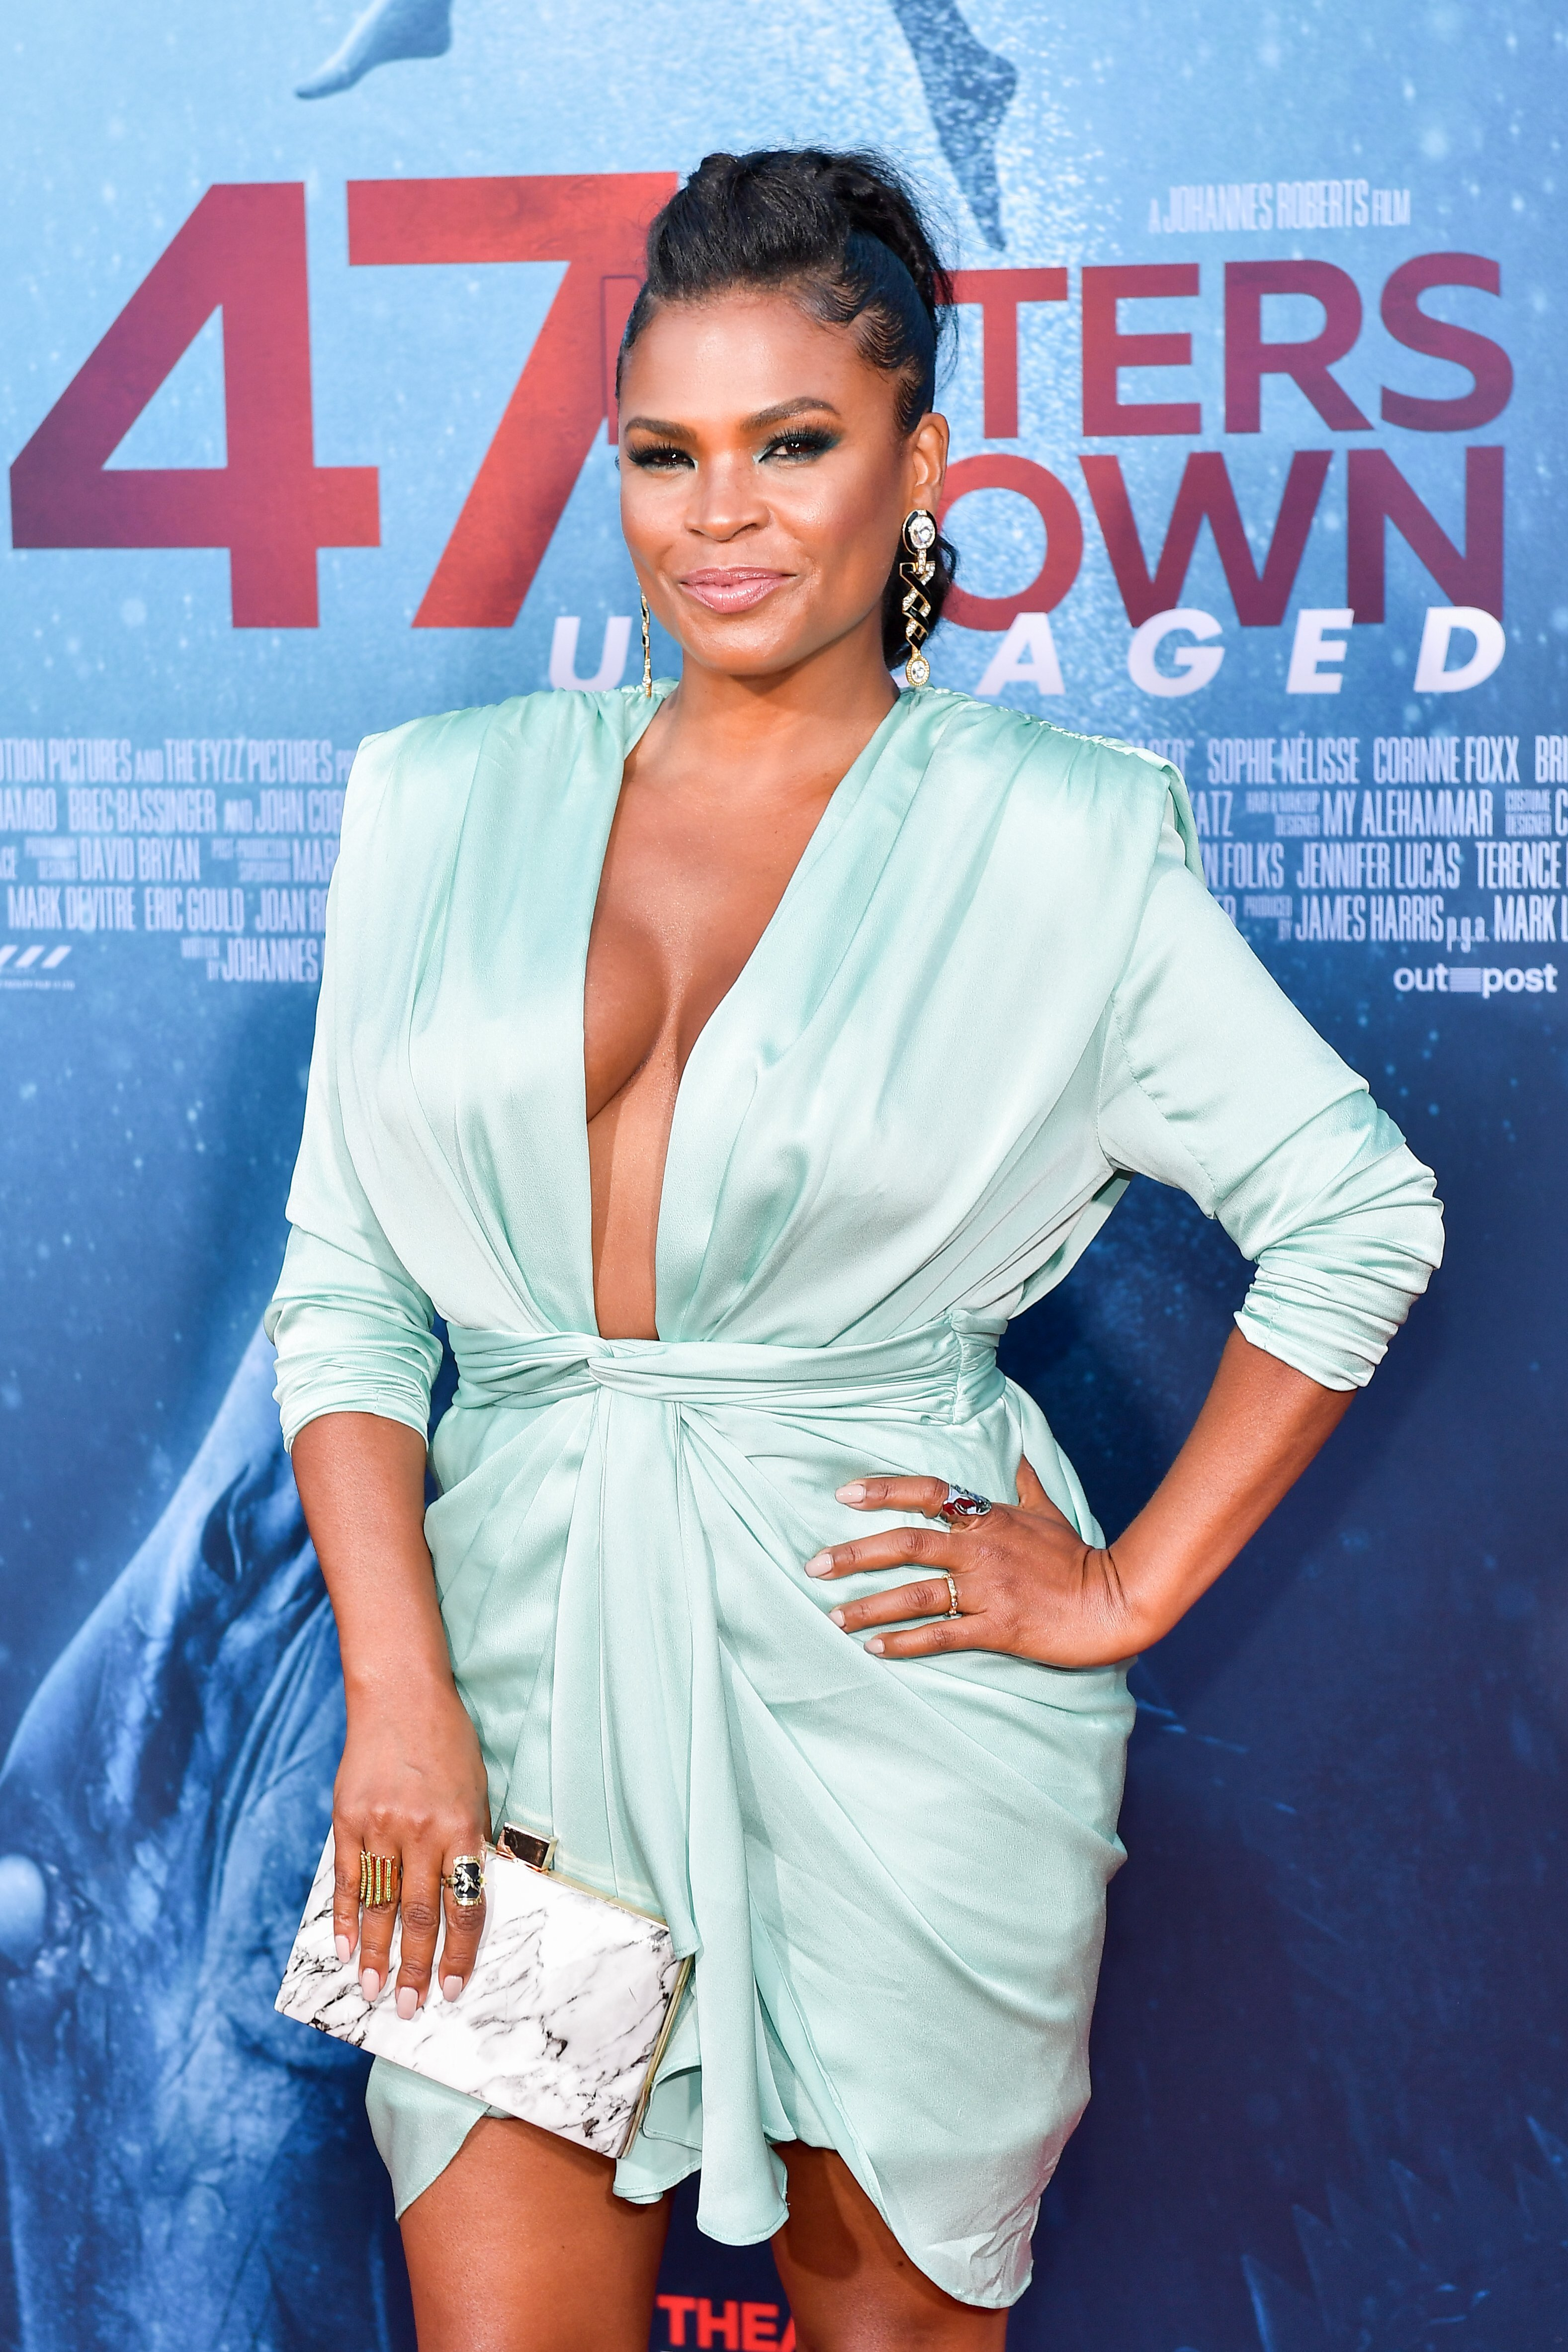 """Nia Long at the LA Premiere of """"47 Meters Down Uncaged"""" on Aug. 13, 2019 in California 